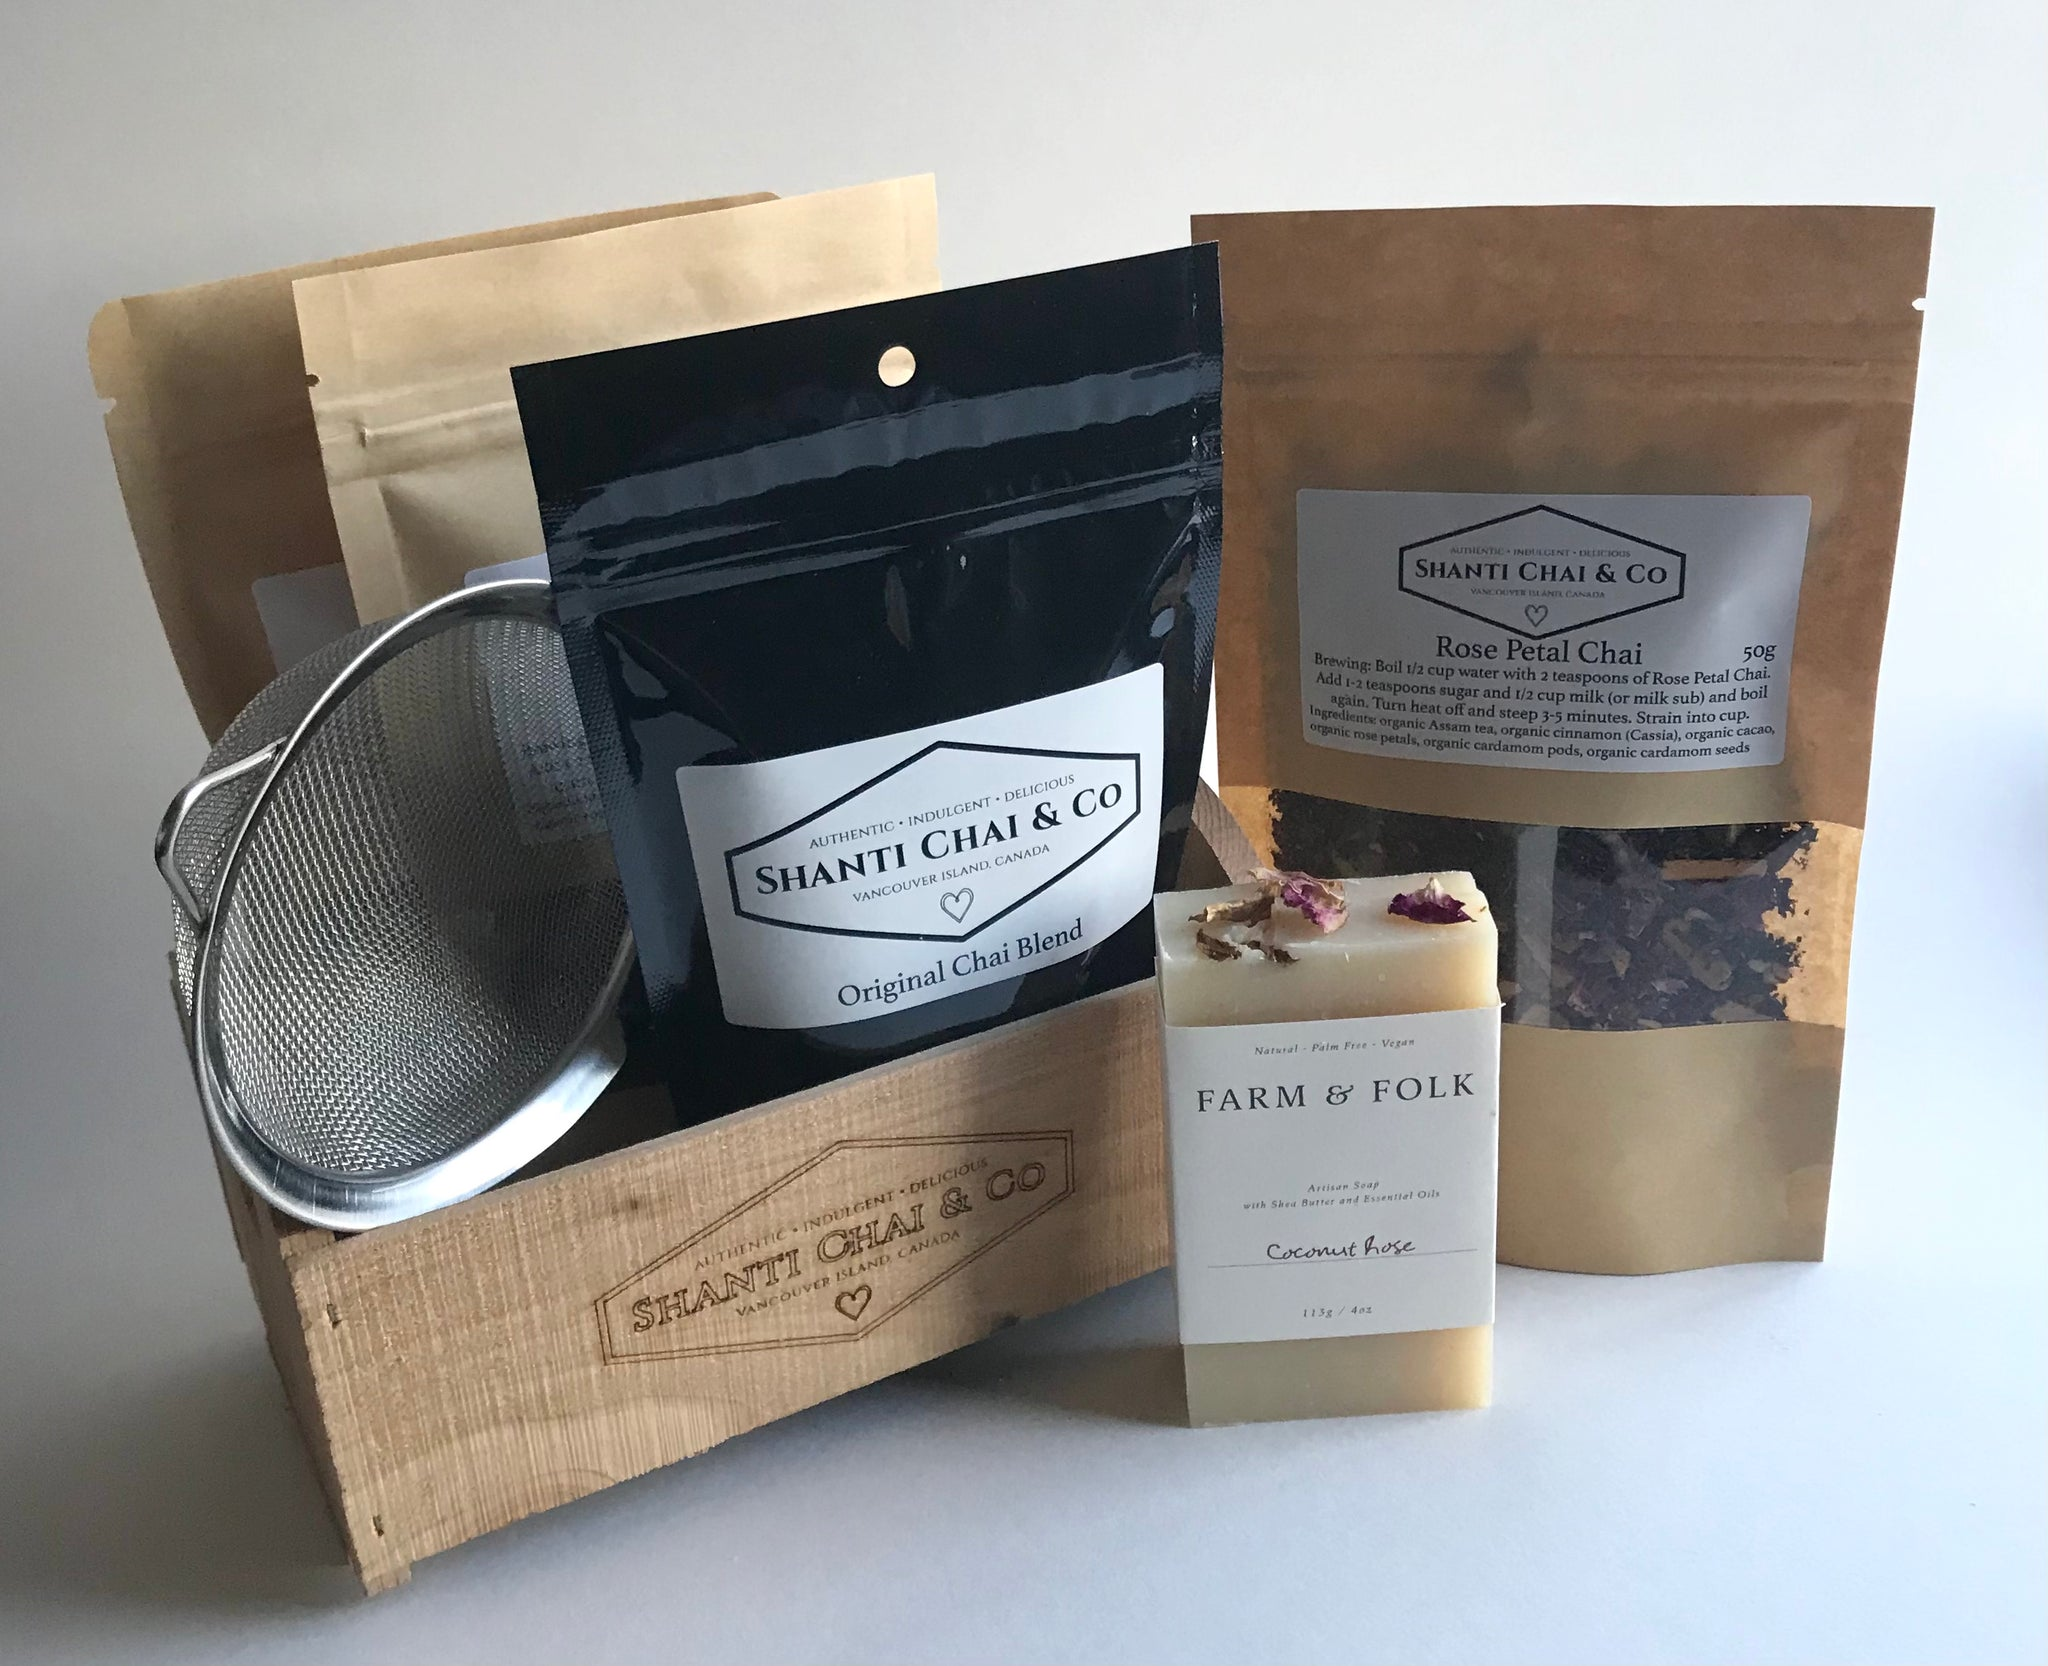 The Chai Lover's Gift Set, from Shanti Chai & Co. Includes: Original Chai Blend (50g), Rose Petal Chai (50g), Candied Ginger Chai (50g), Golden Turmeric Chai (50g), a stainless steel tea strainer, a bar of Coconut Rose soap from Farm & Folk and a mini handmade crate from local company Yonderwood.